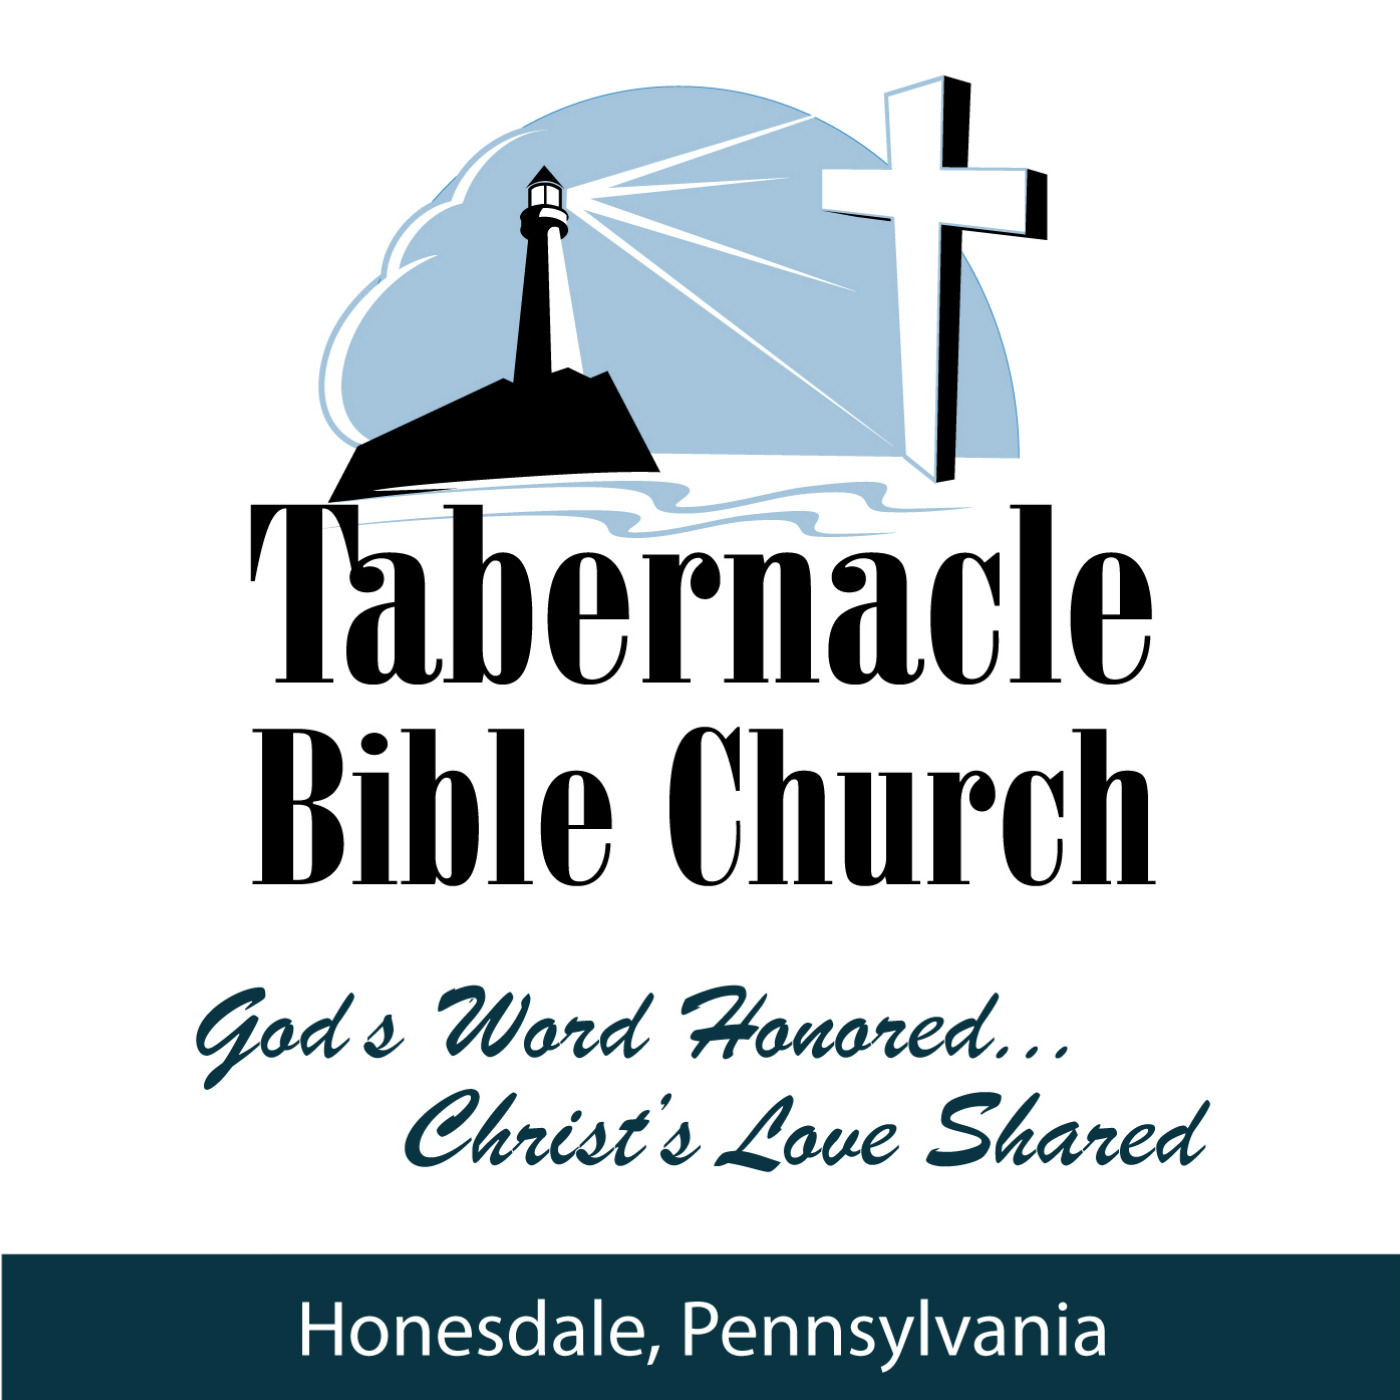 Tabernacle Bible Church